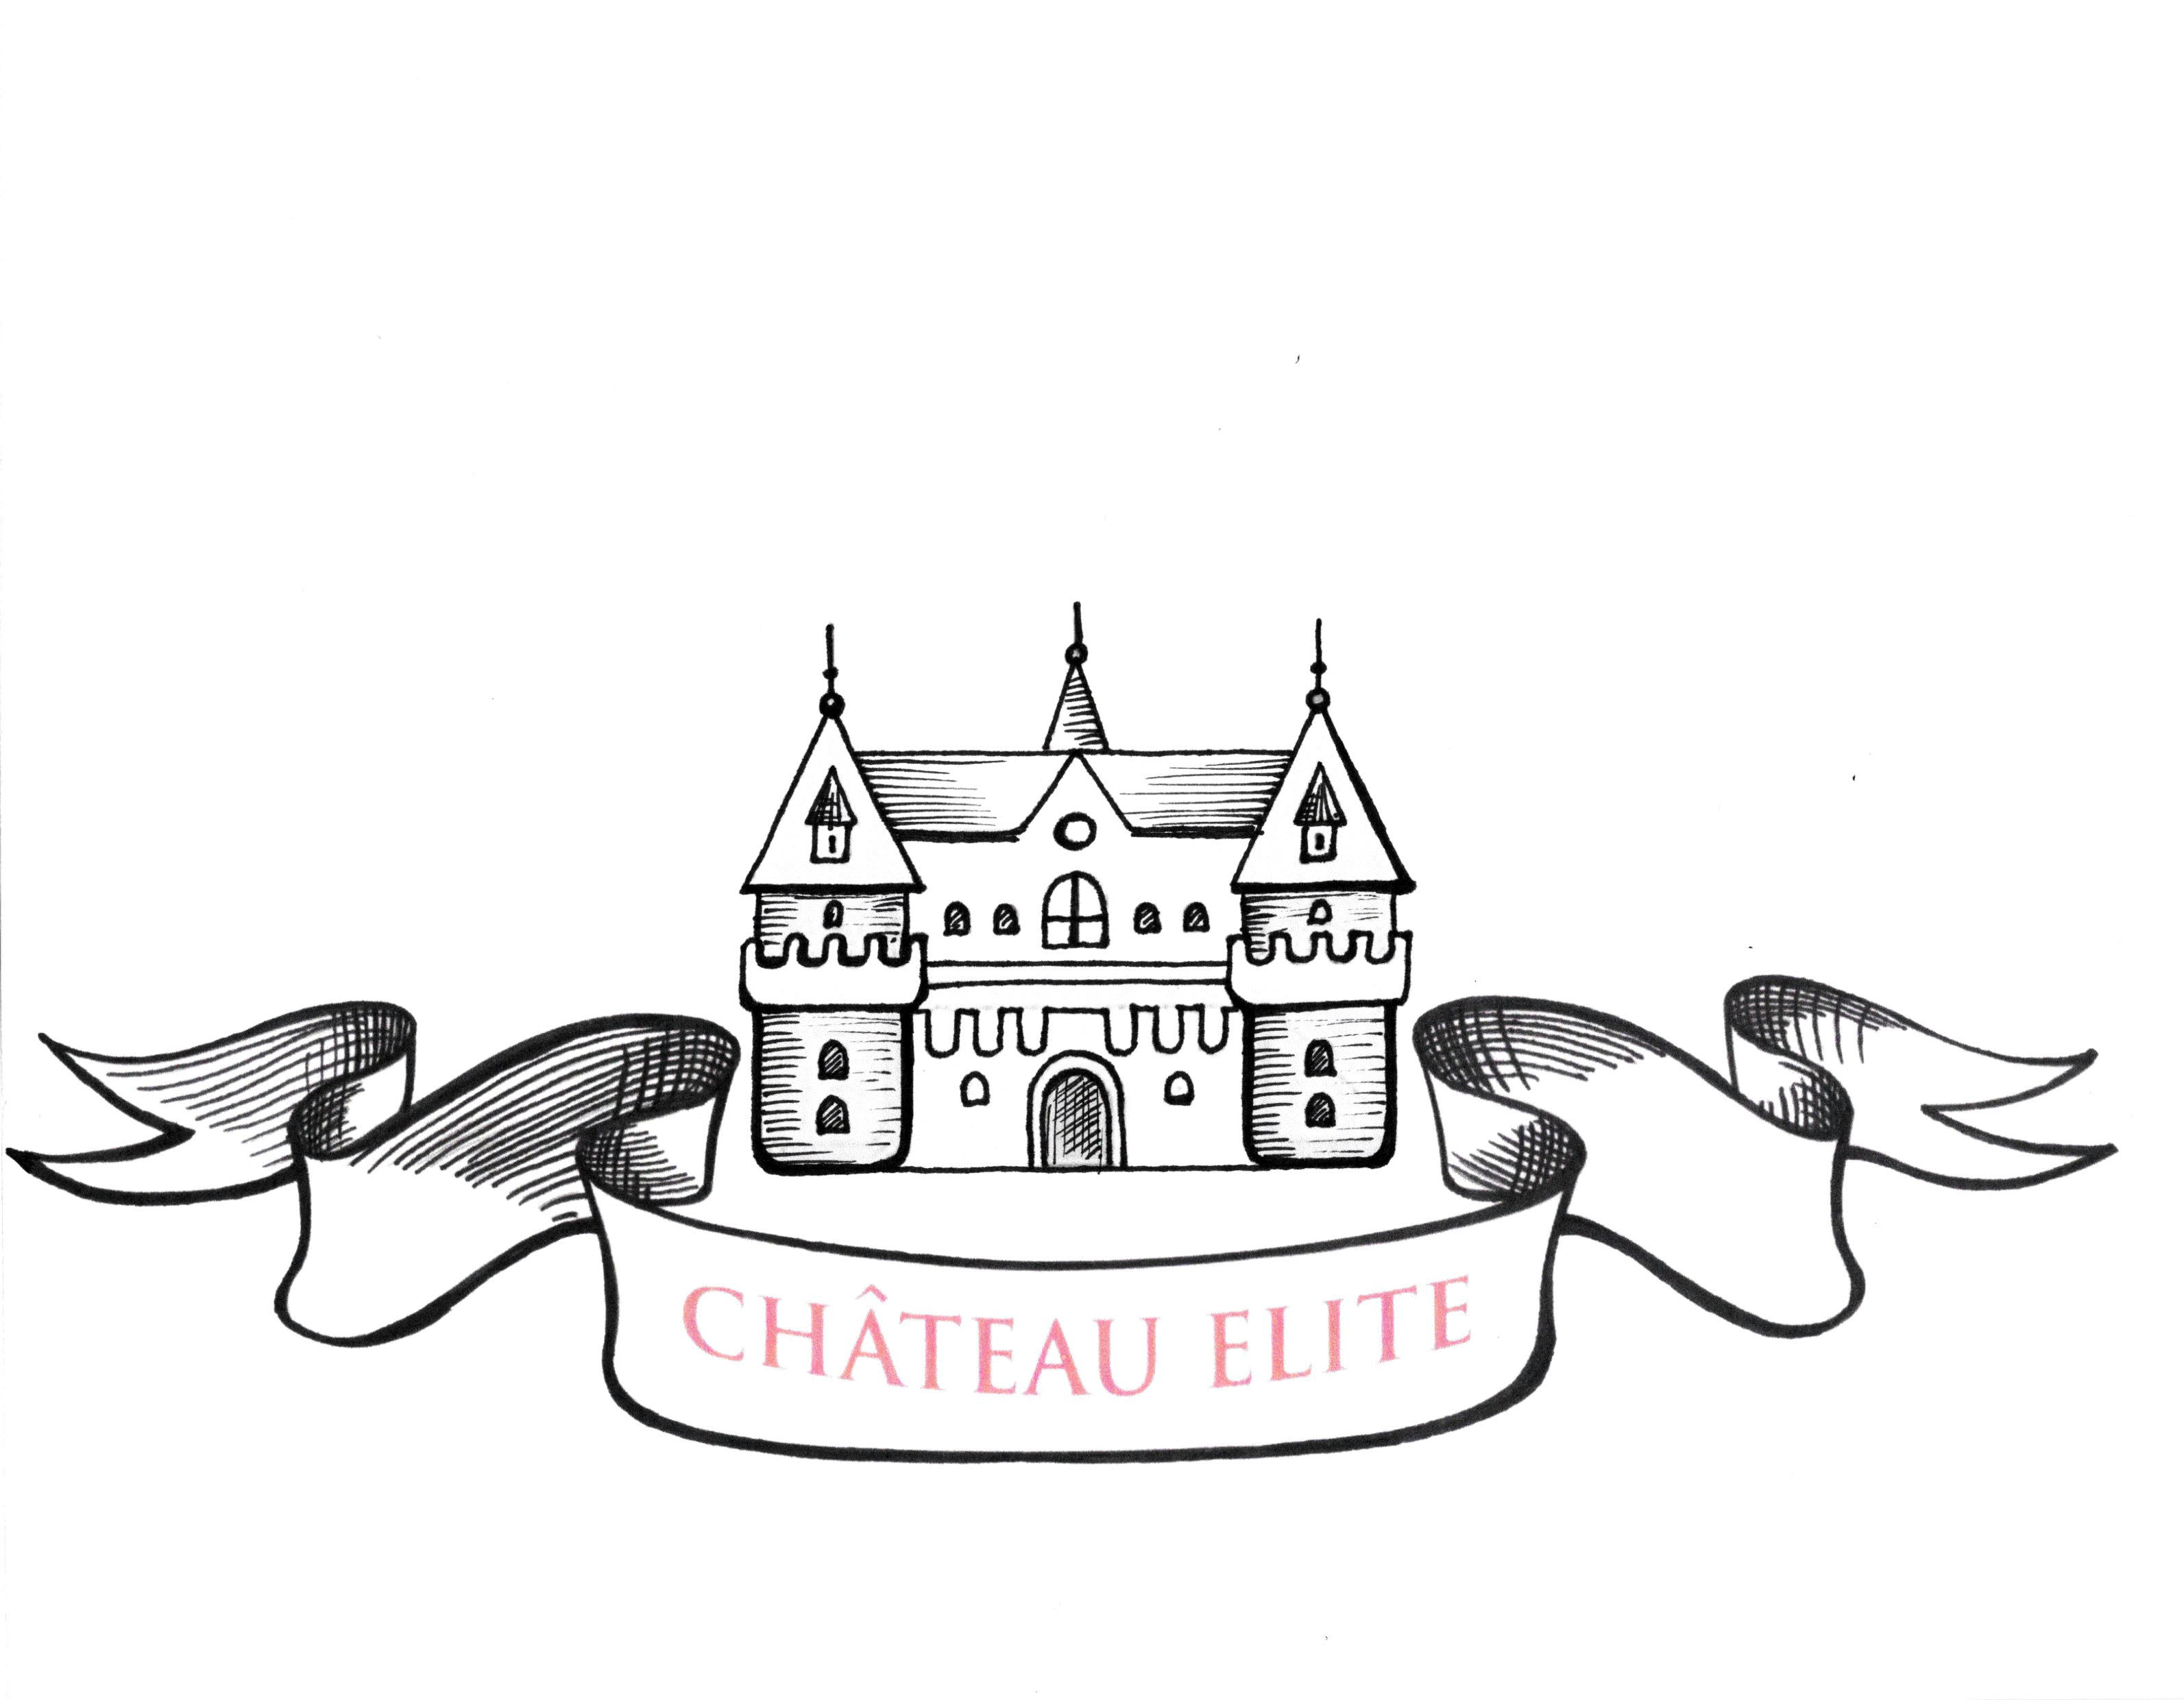 Chateau Elite